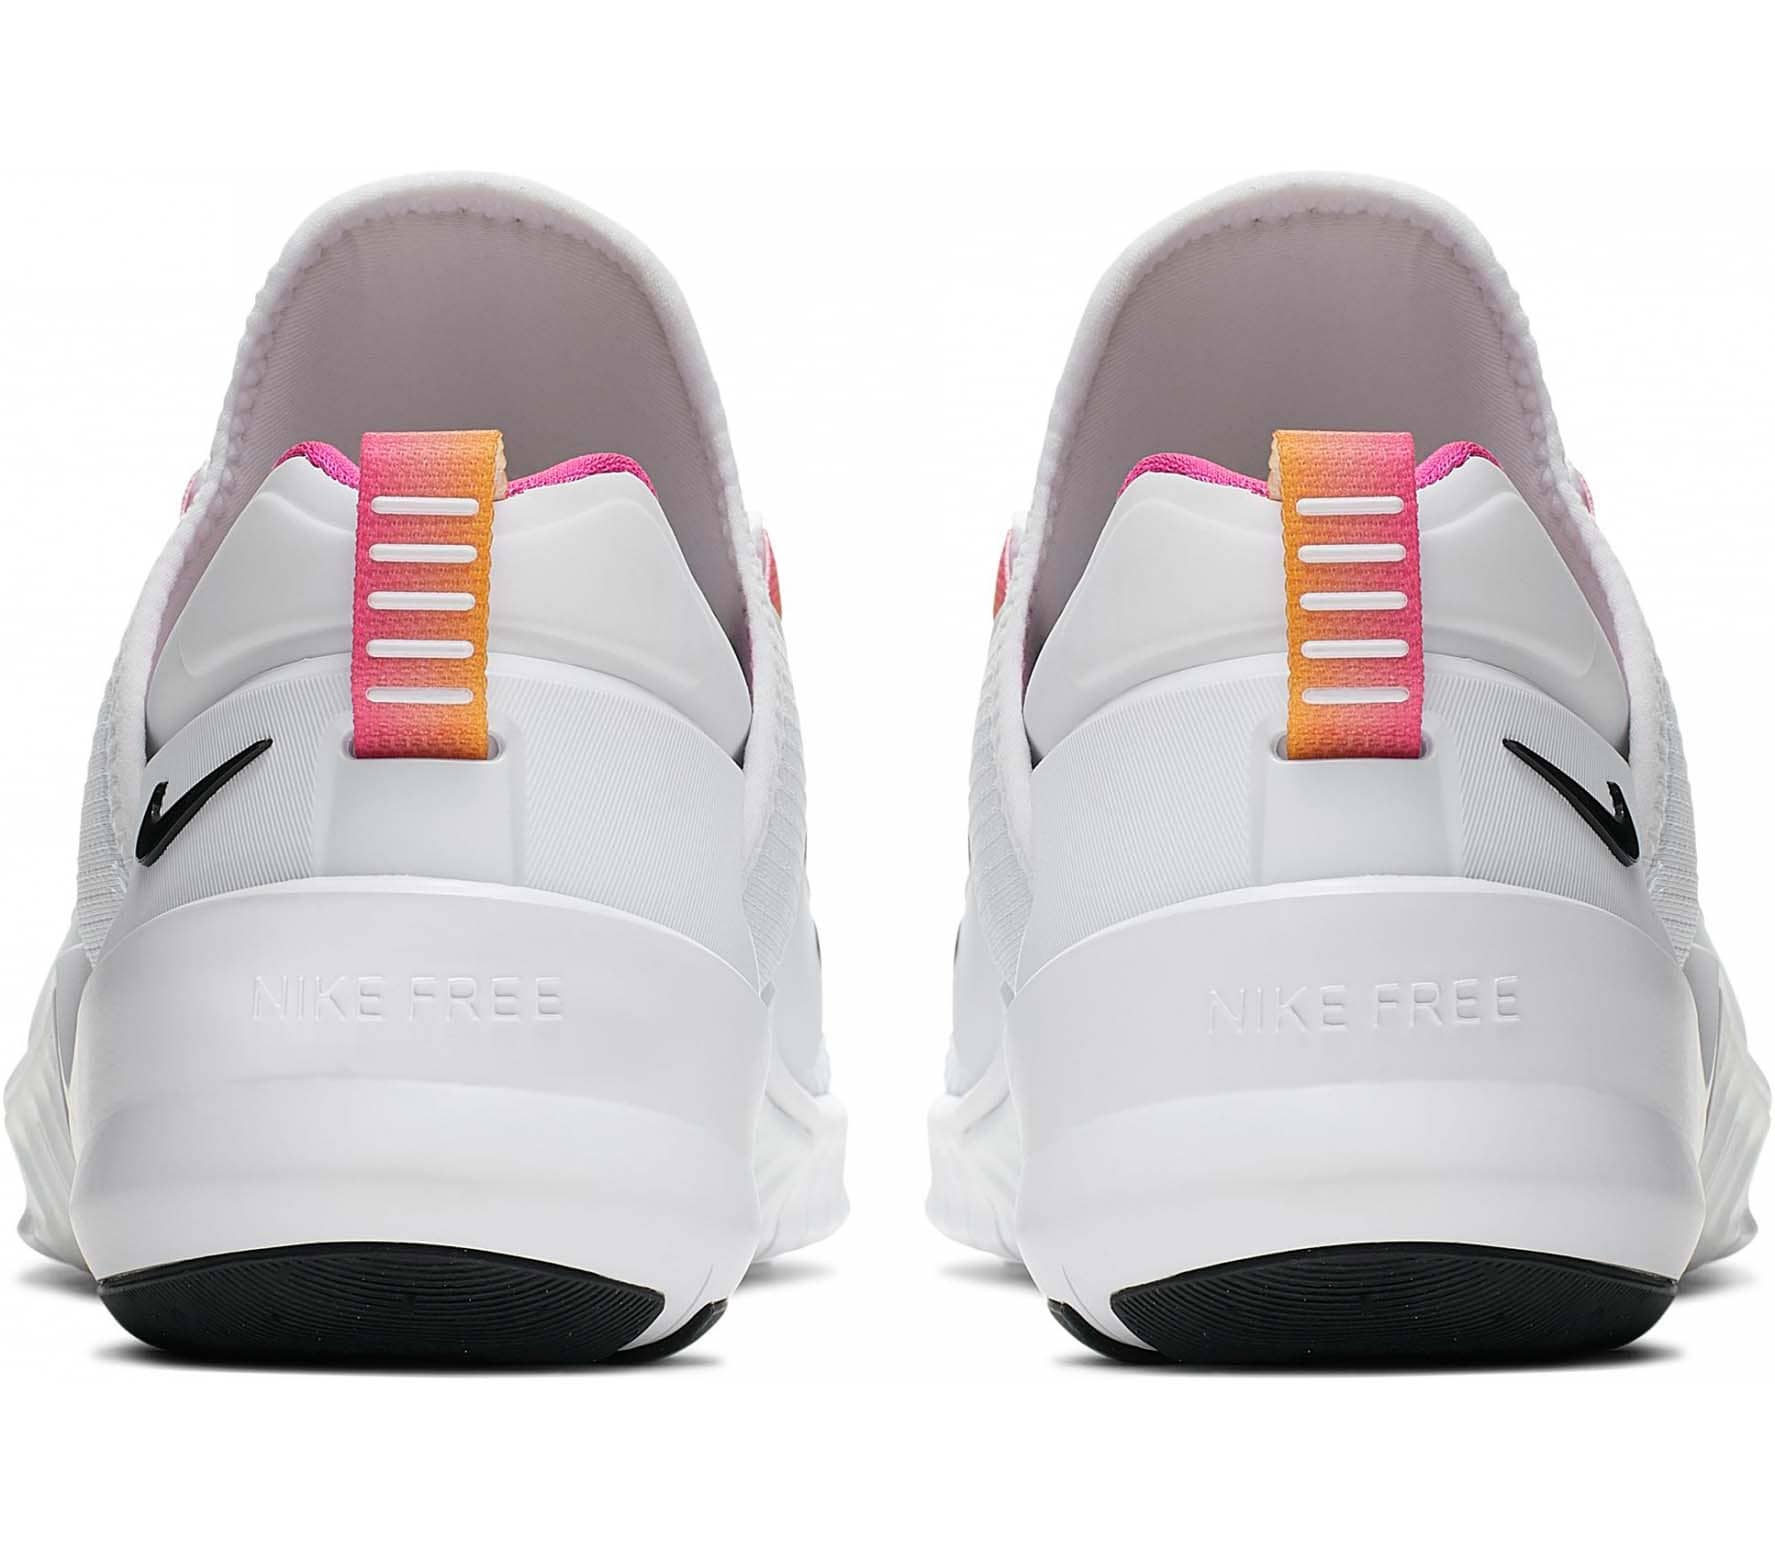 95d76d693a8d Nike - Free X Metcon 2 women s training shoes (white) - buy it at ...